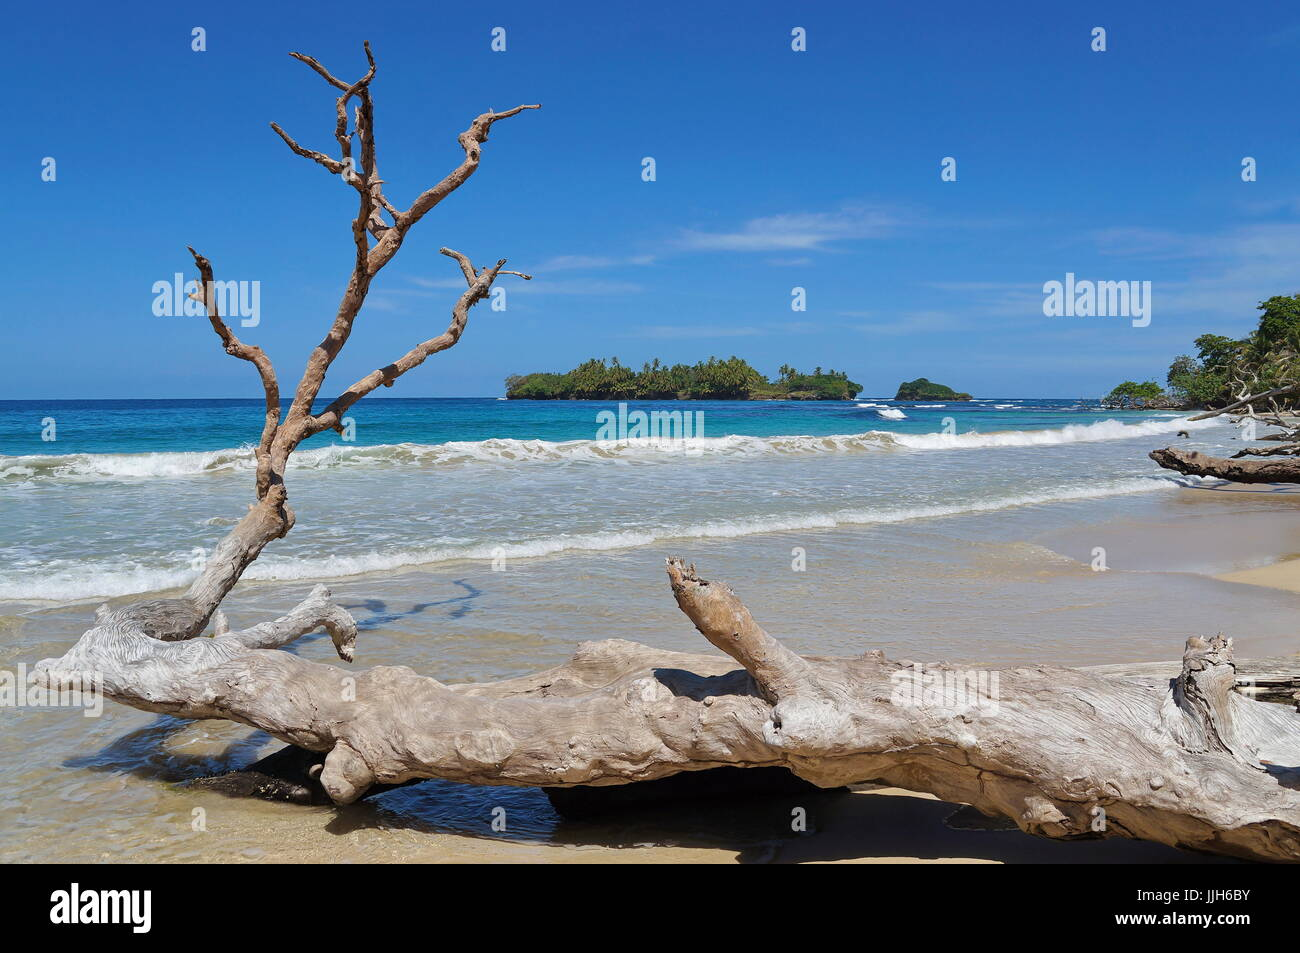 Large driftwood tree trunk on a sandy seashore with tropical island in background, Caribbean sea, Bastimentos, Bocas - Stock Image